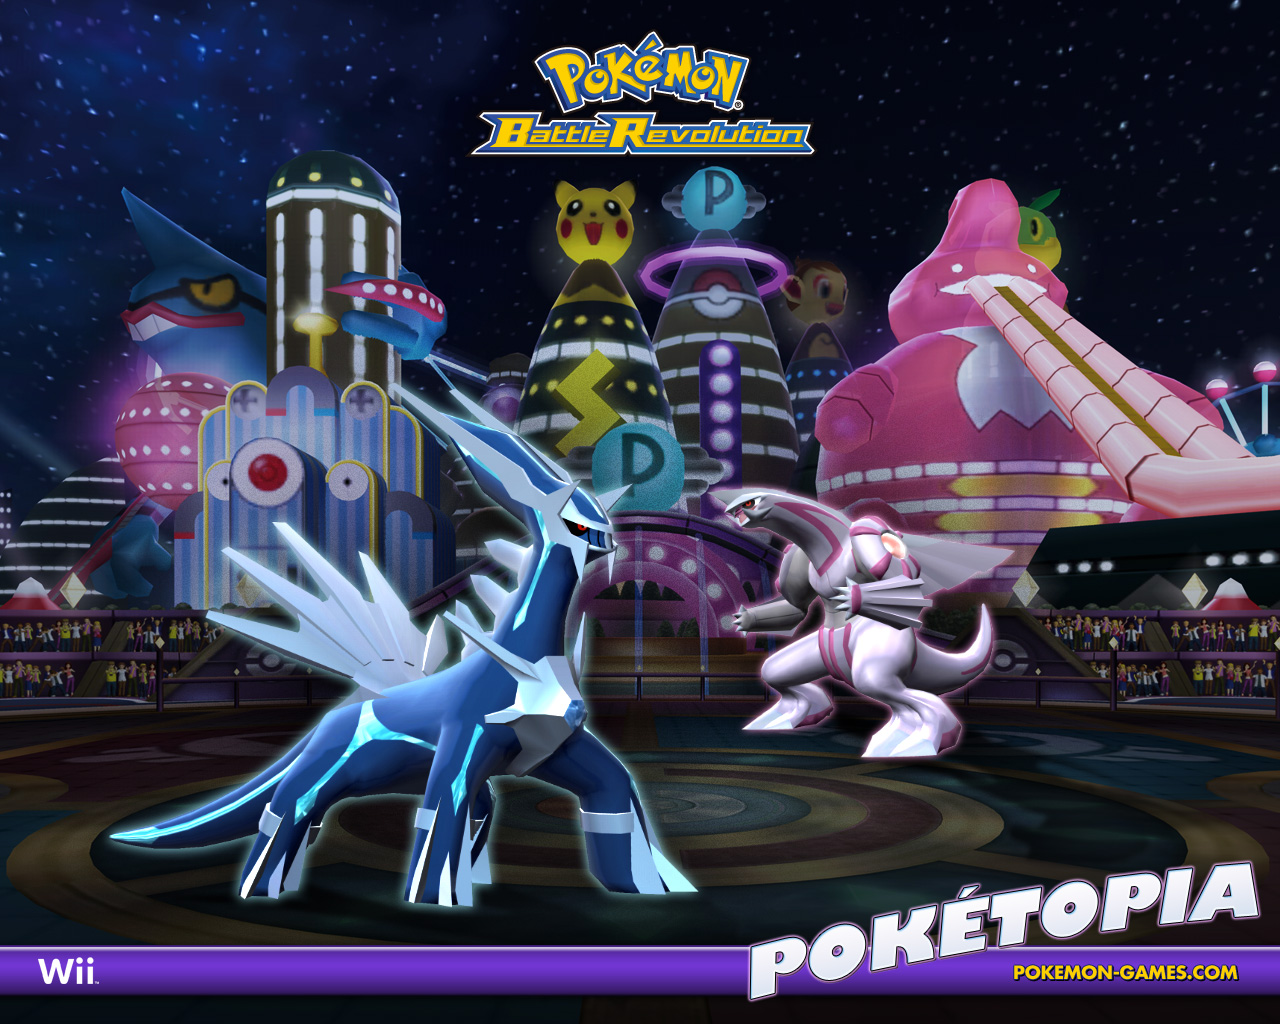 Pokemon_spinoff_battlerevolution